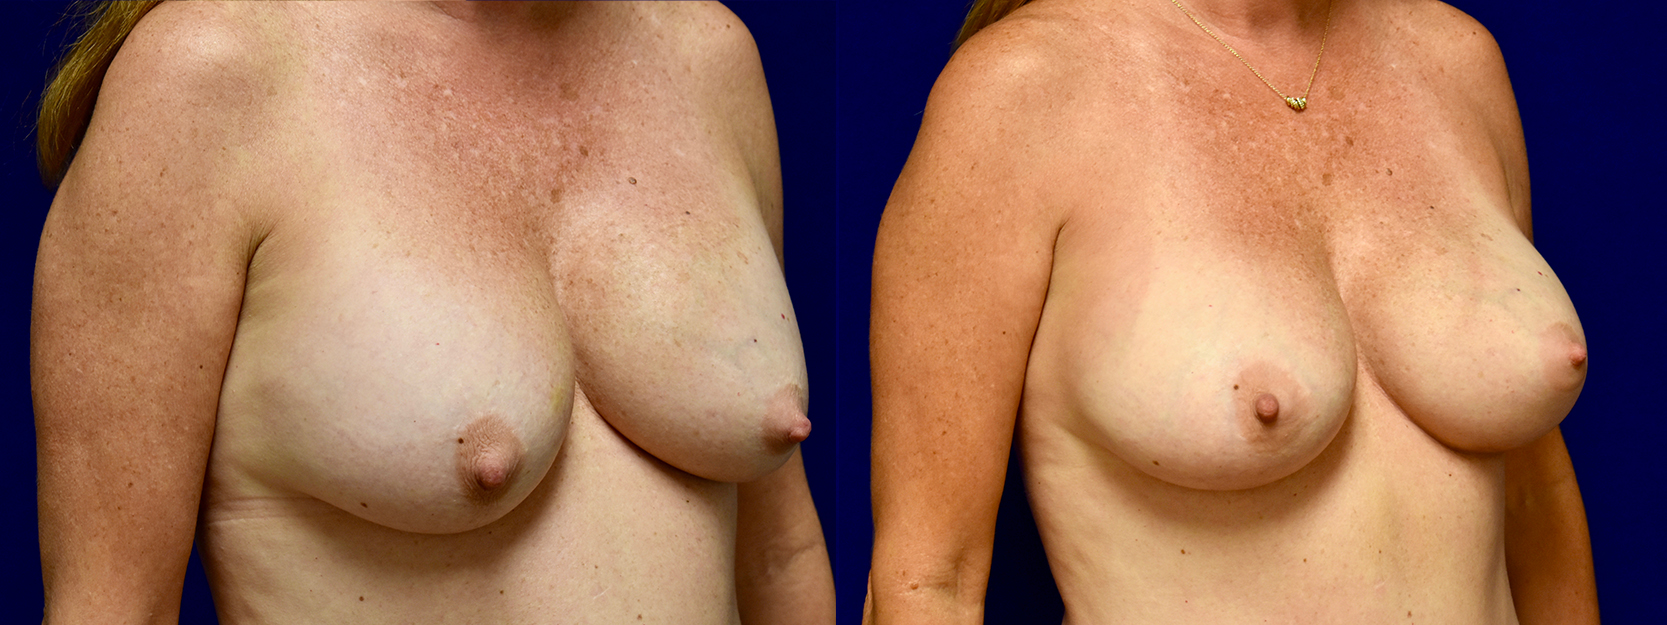 Right 3/4 View - Breast Implant Revision